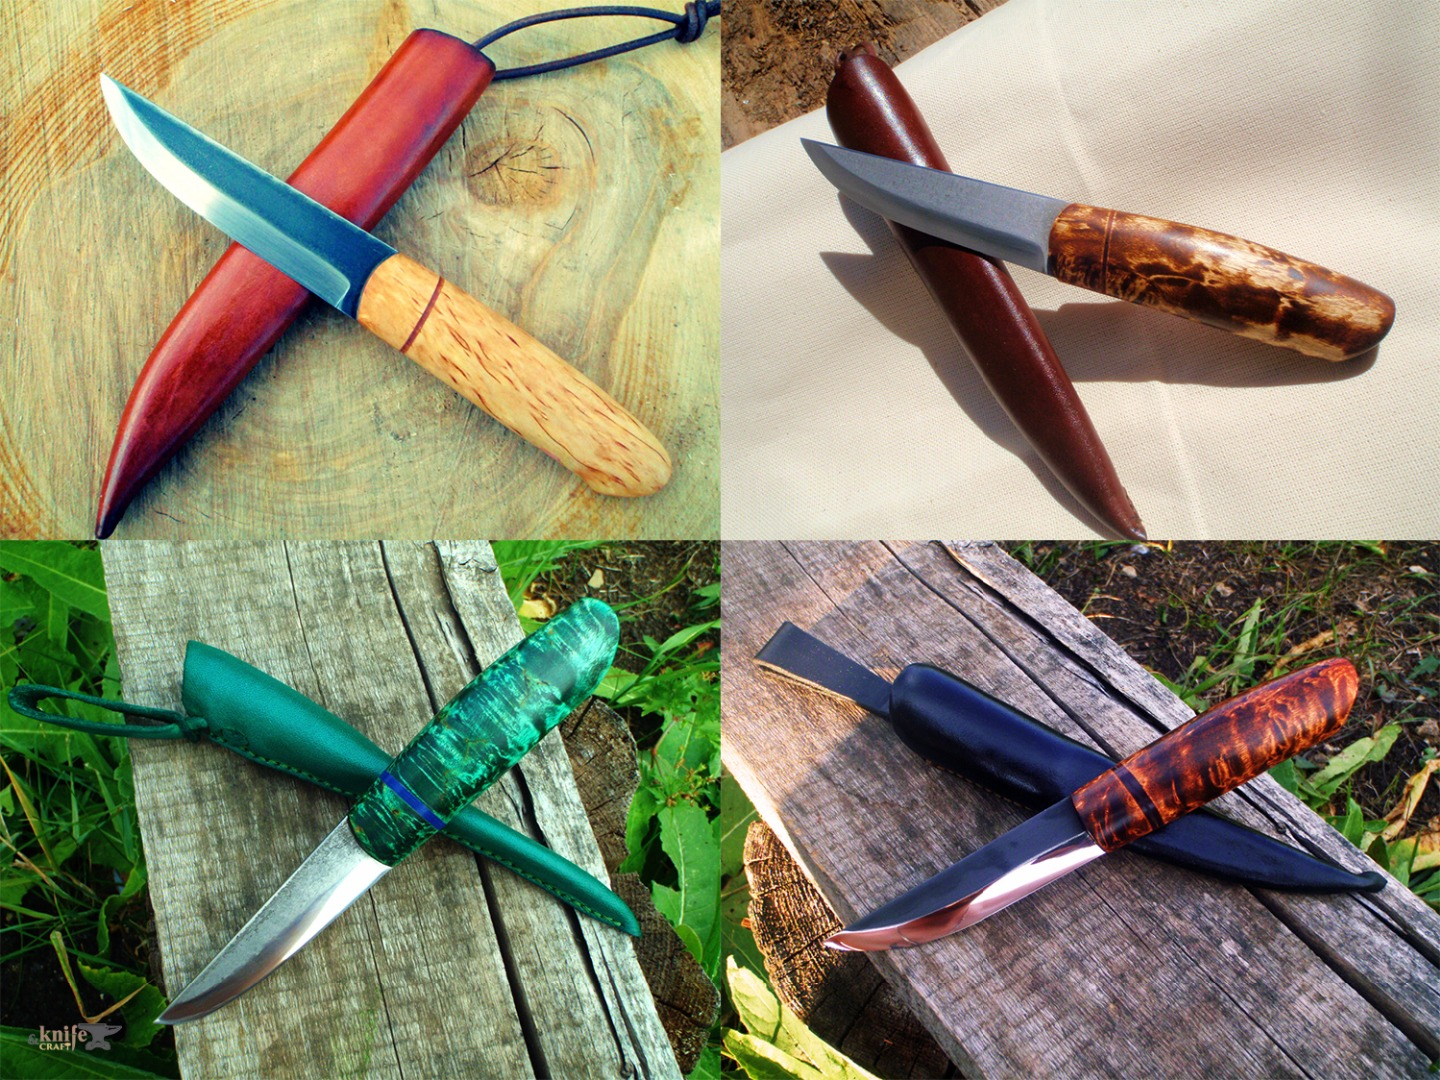 handemade russian hunting knives with forged blades and green and brown handles